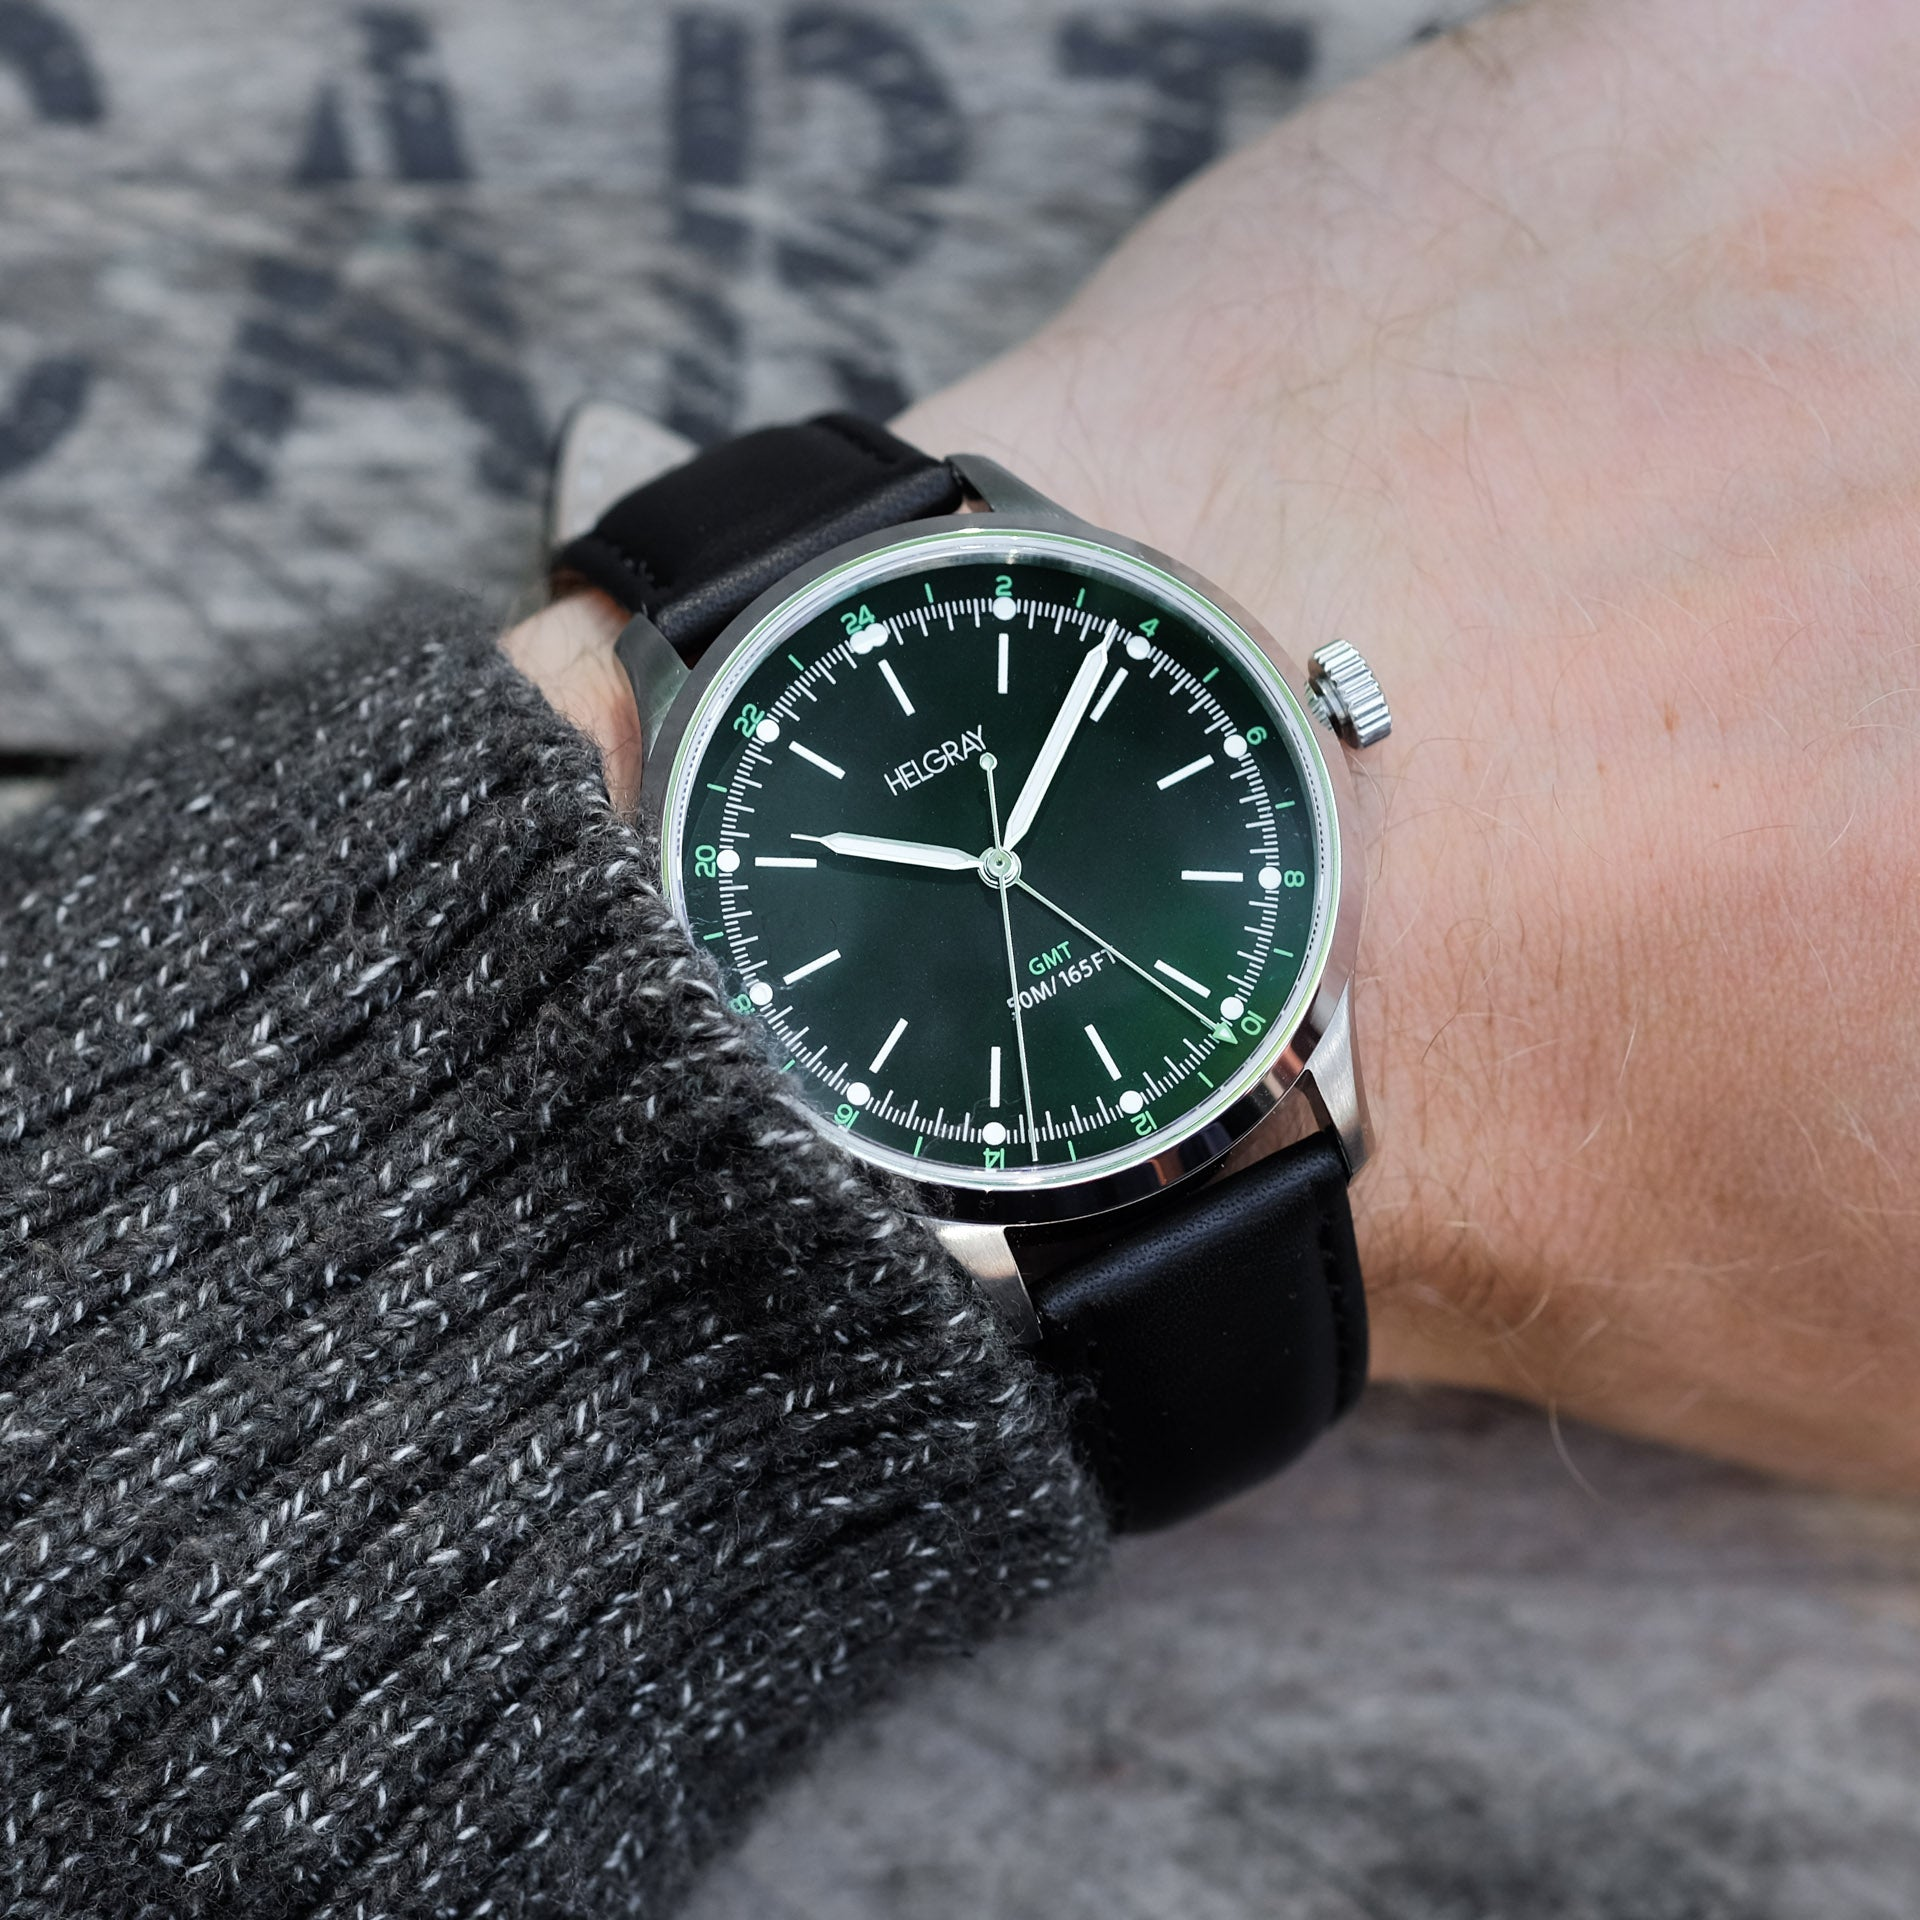 08f80b175a6 Styled after vintage military watches